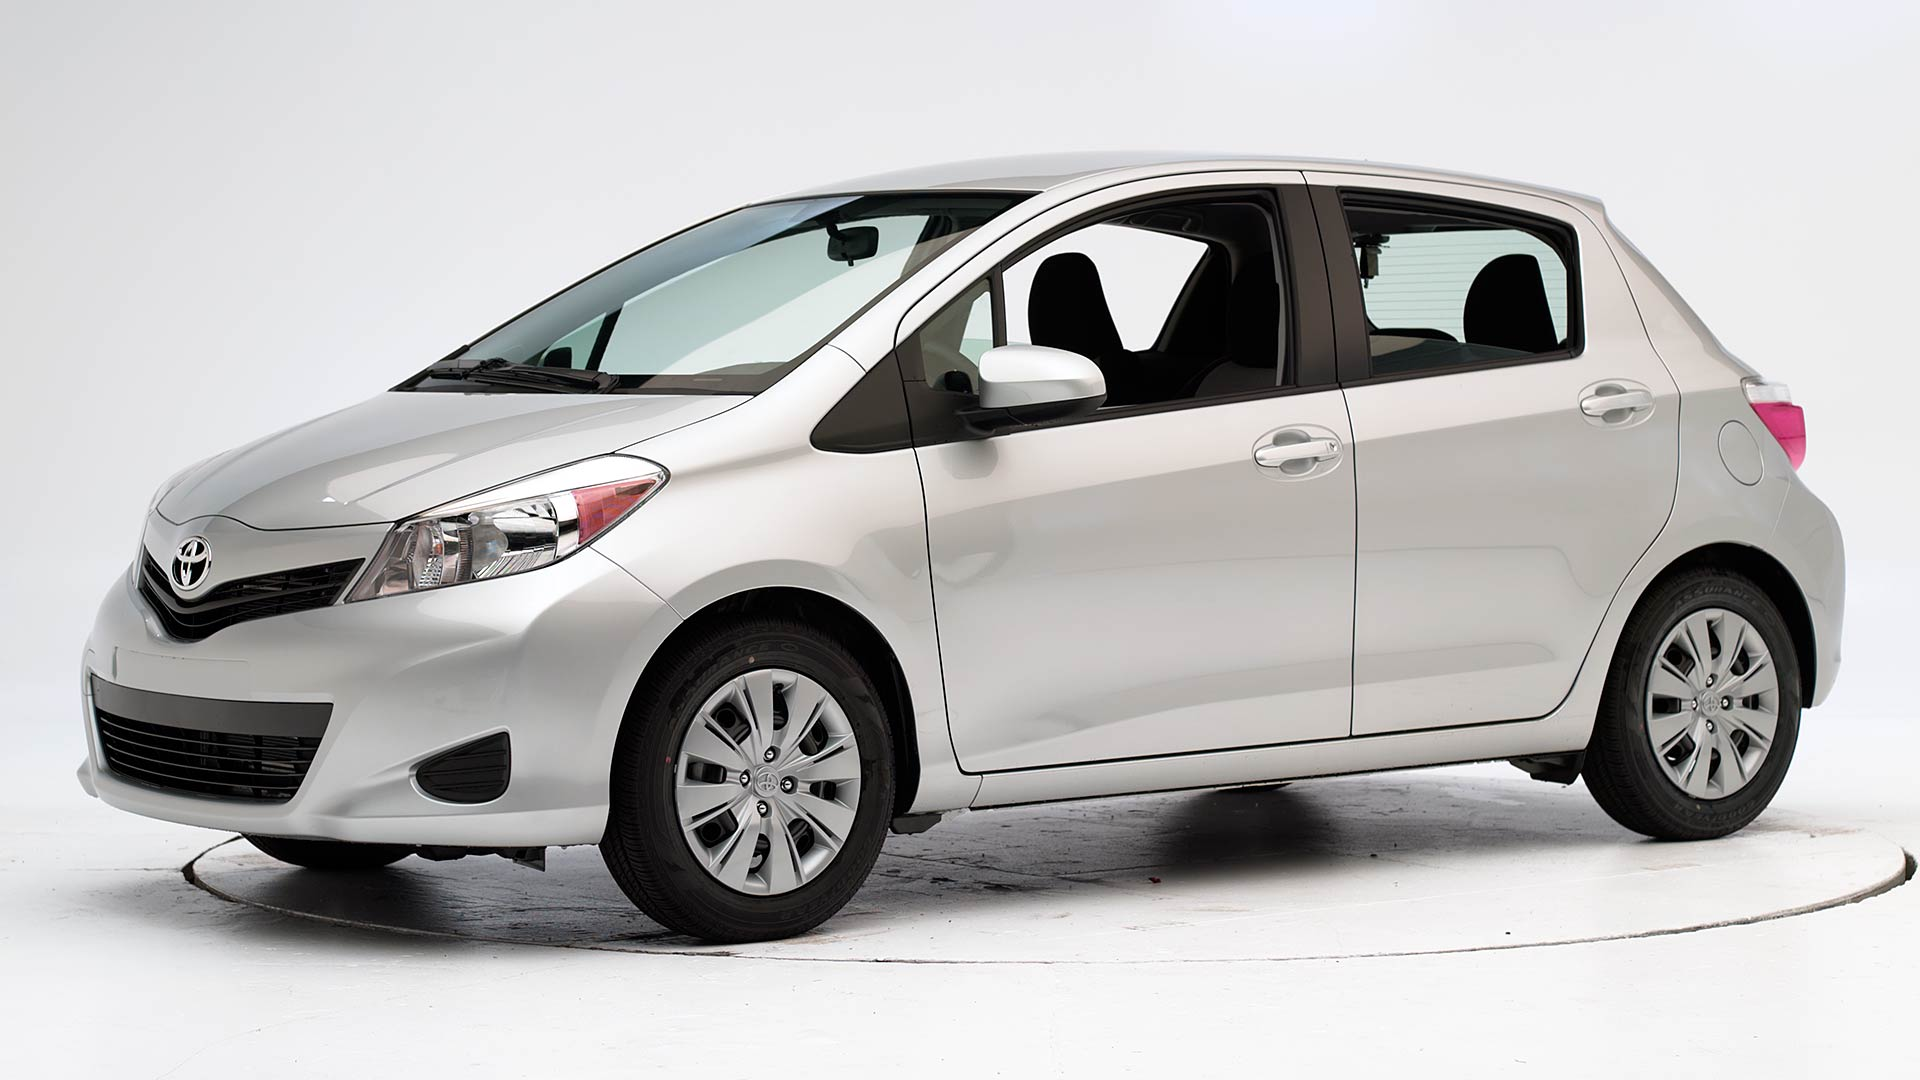 2012 Toyota Yaris 4-door hatchback